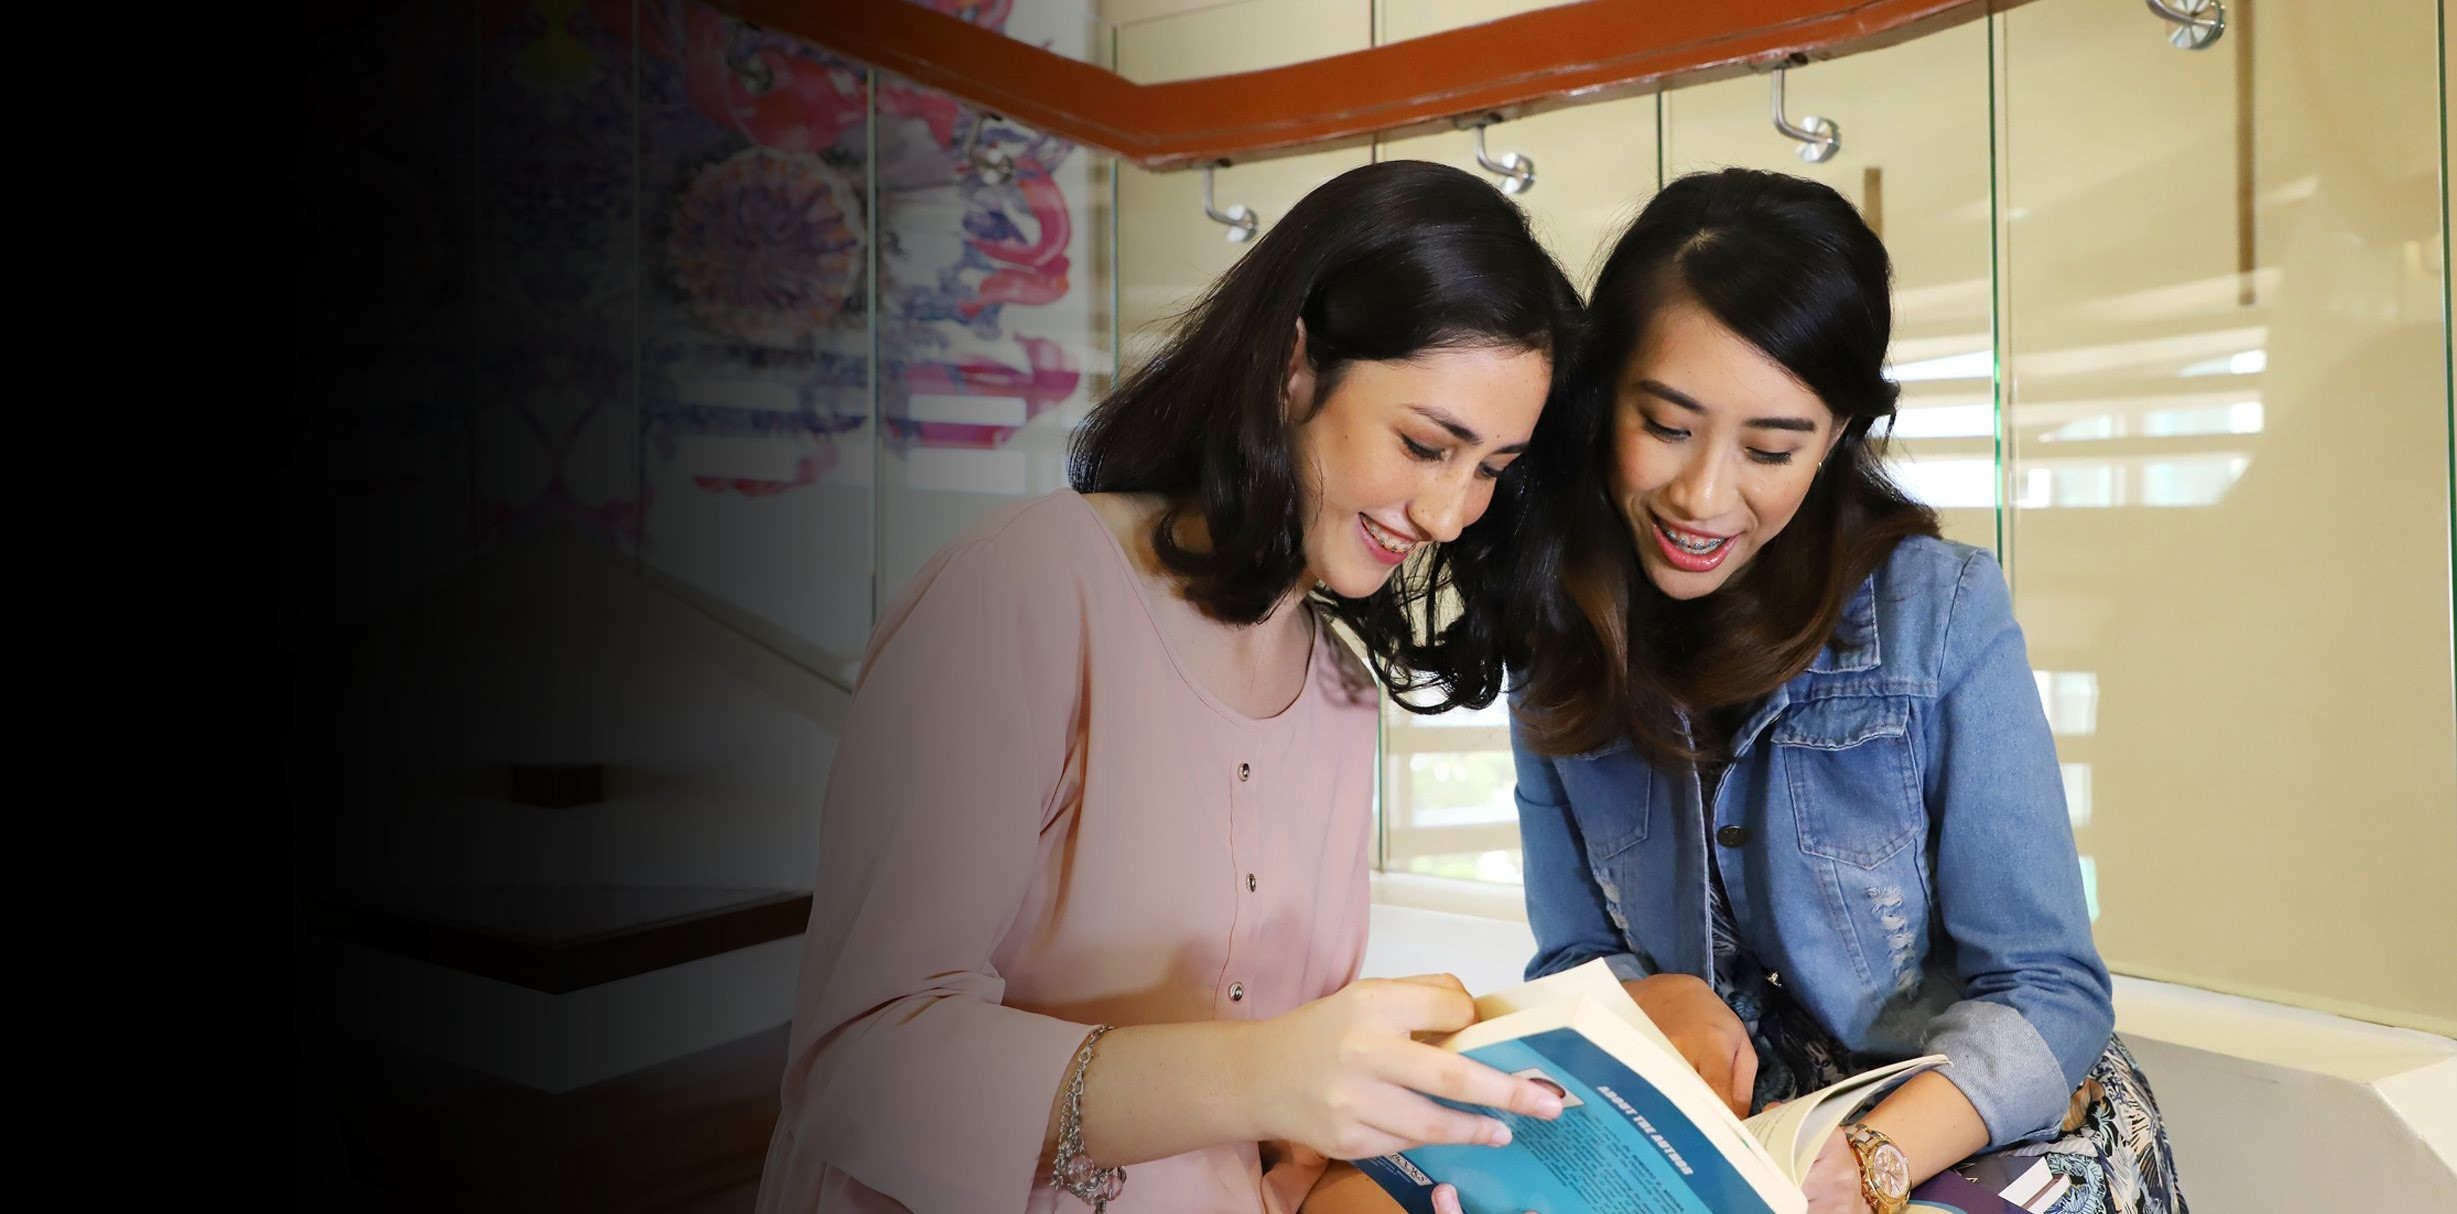 Two hospitality management college students reading a textbook